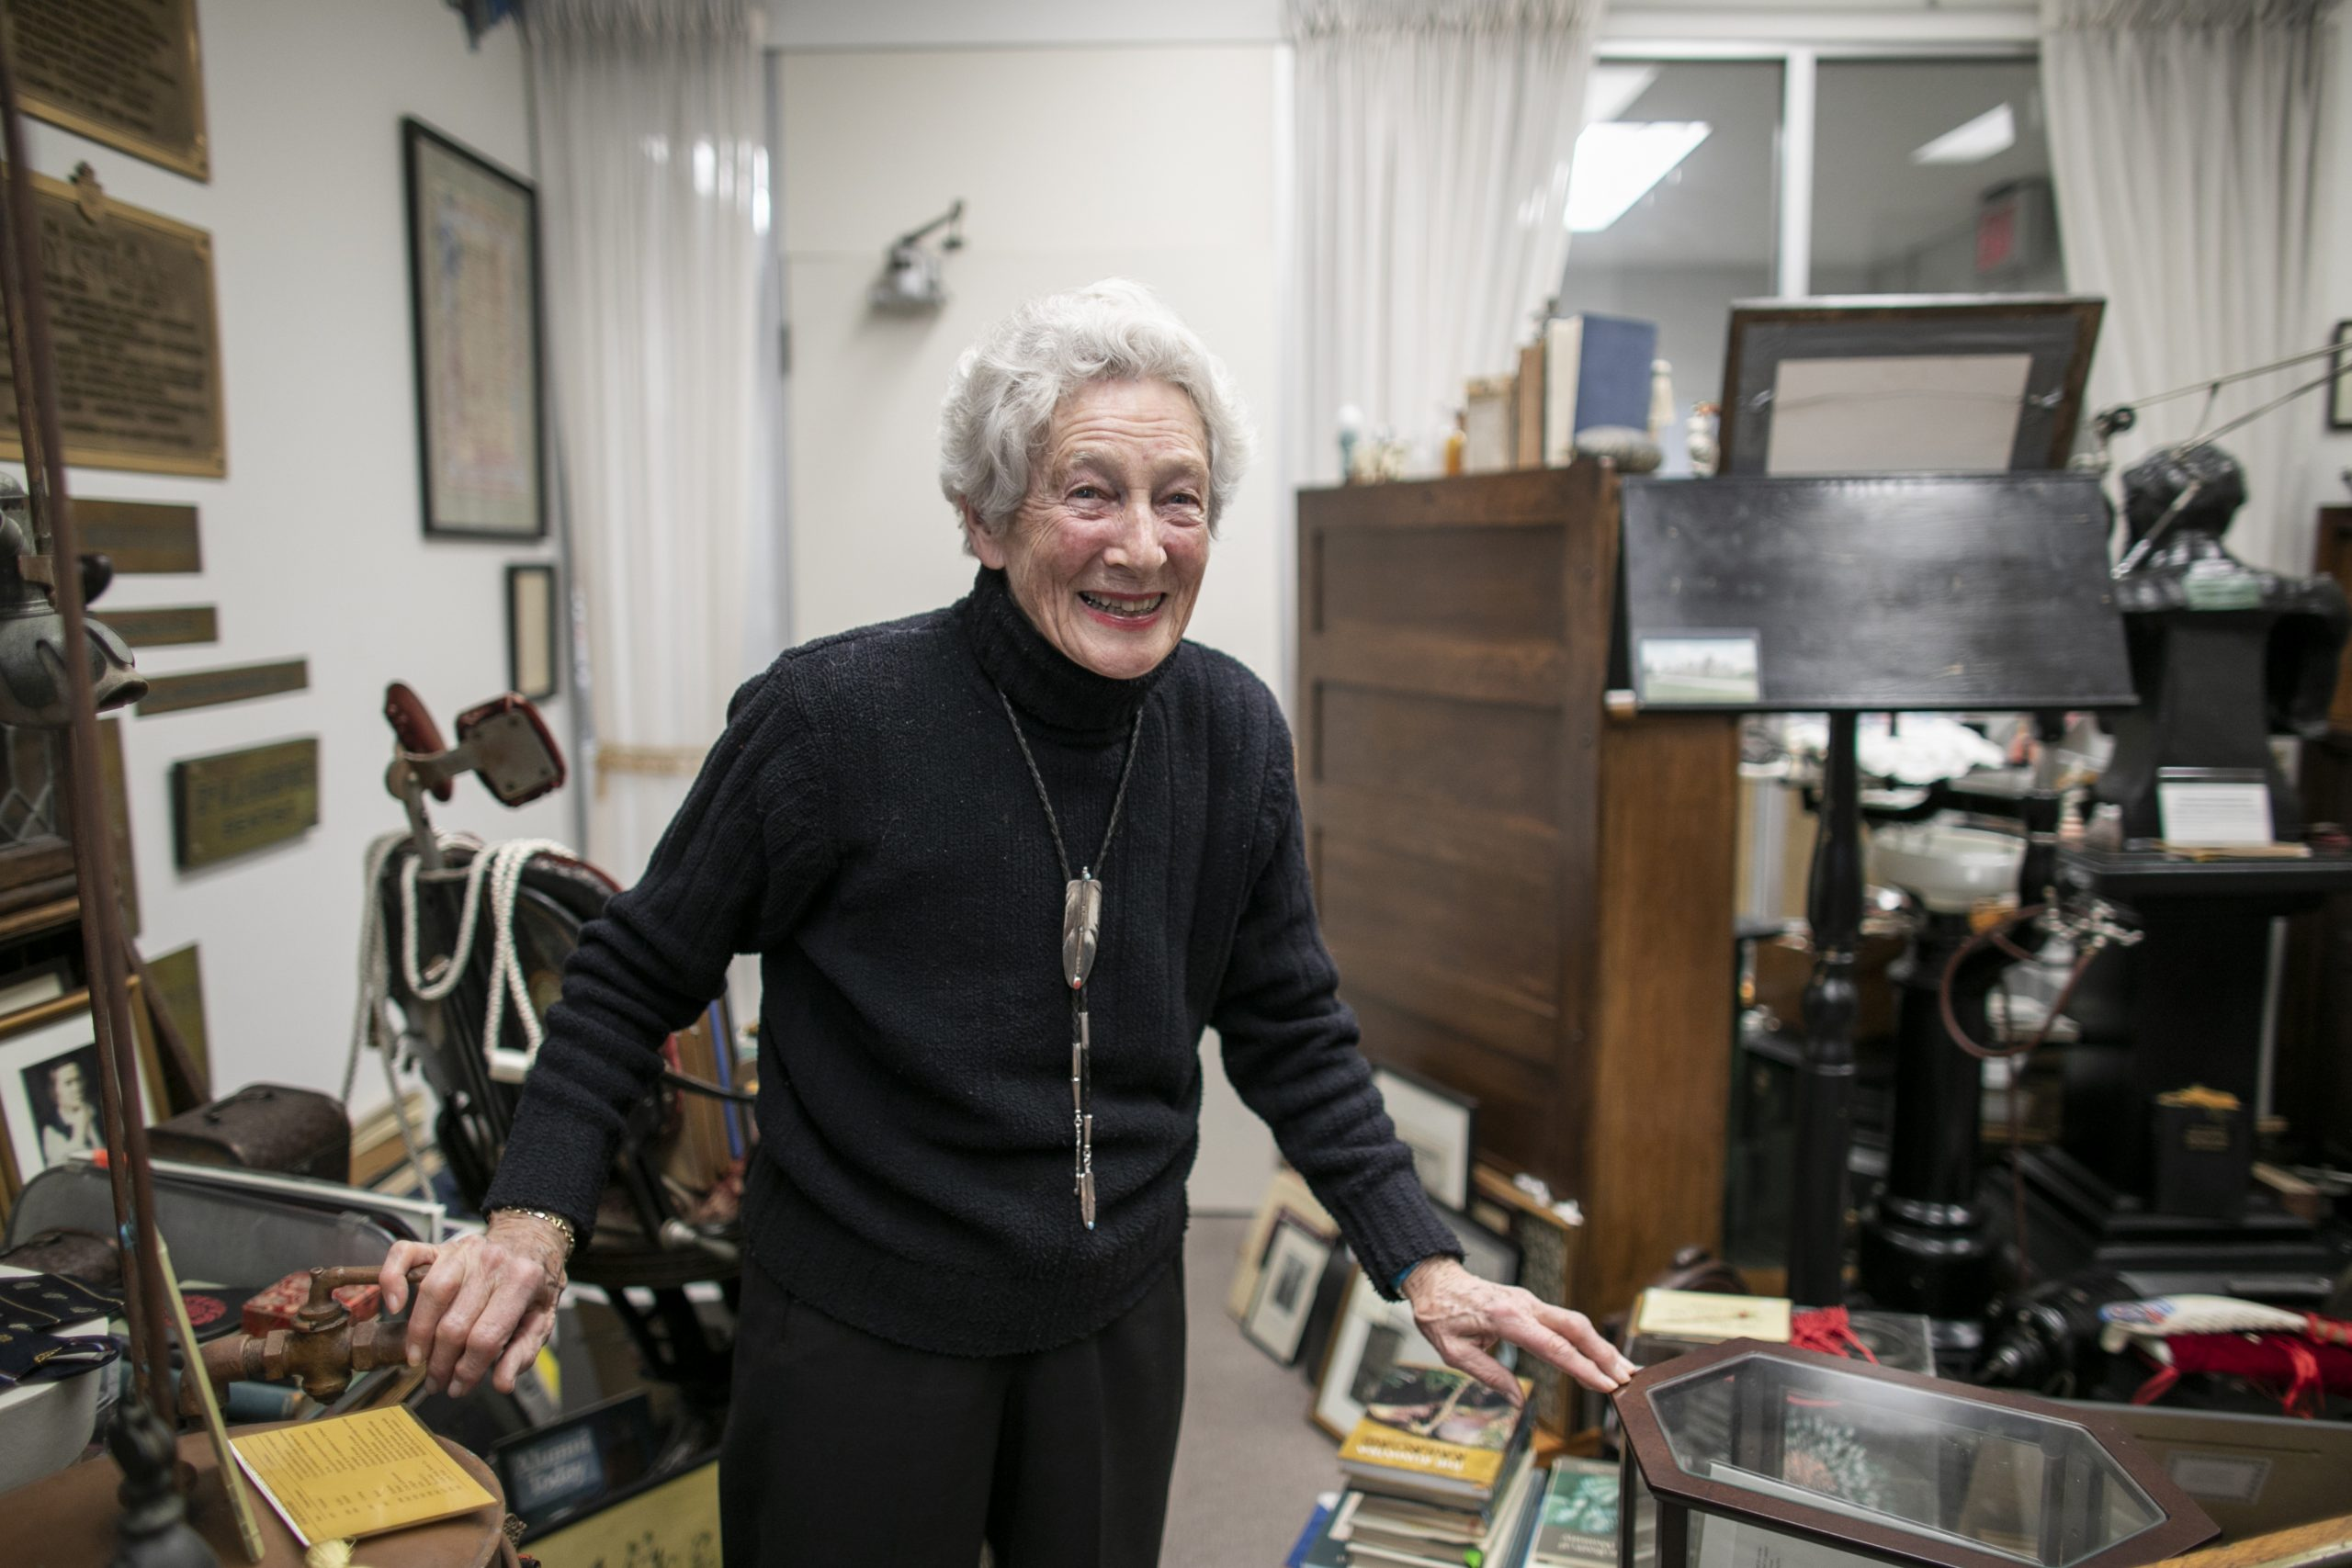 Dr. Anne Dale smiling and standing in a room cluttered with objects